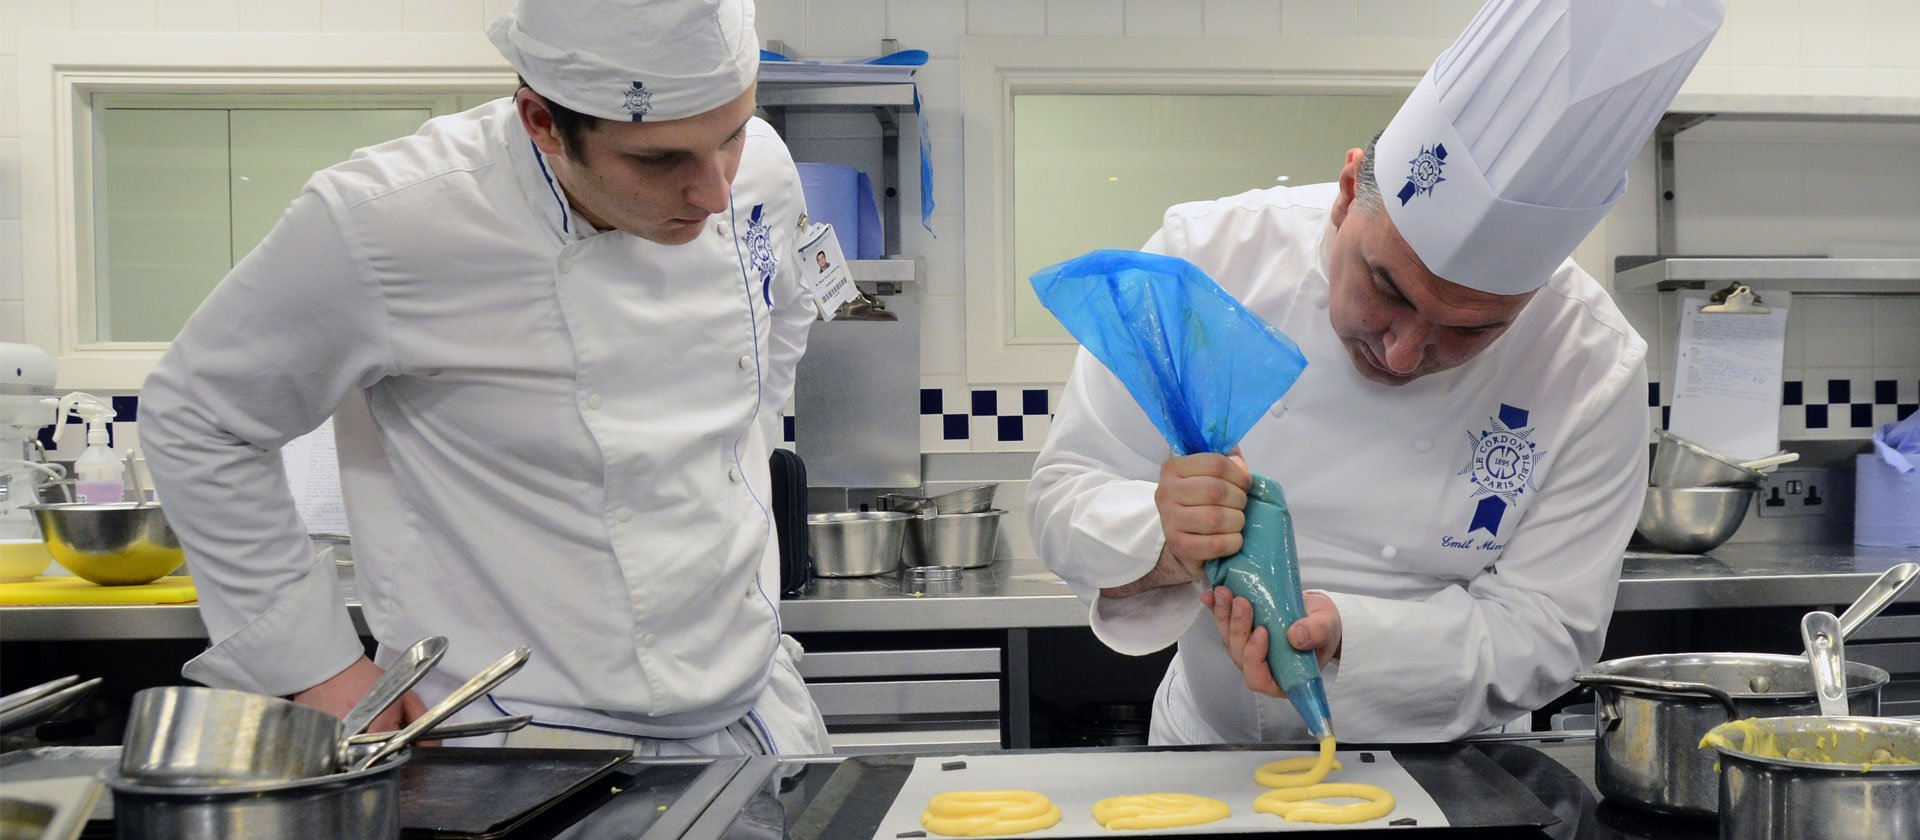 Cuisine Chef Emil Minev - Le Cordon Bleu London